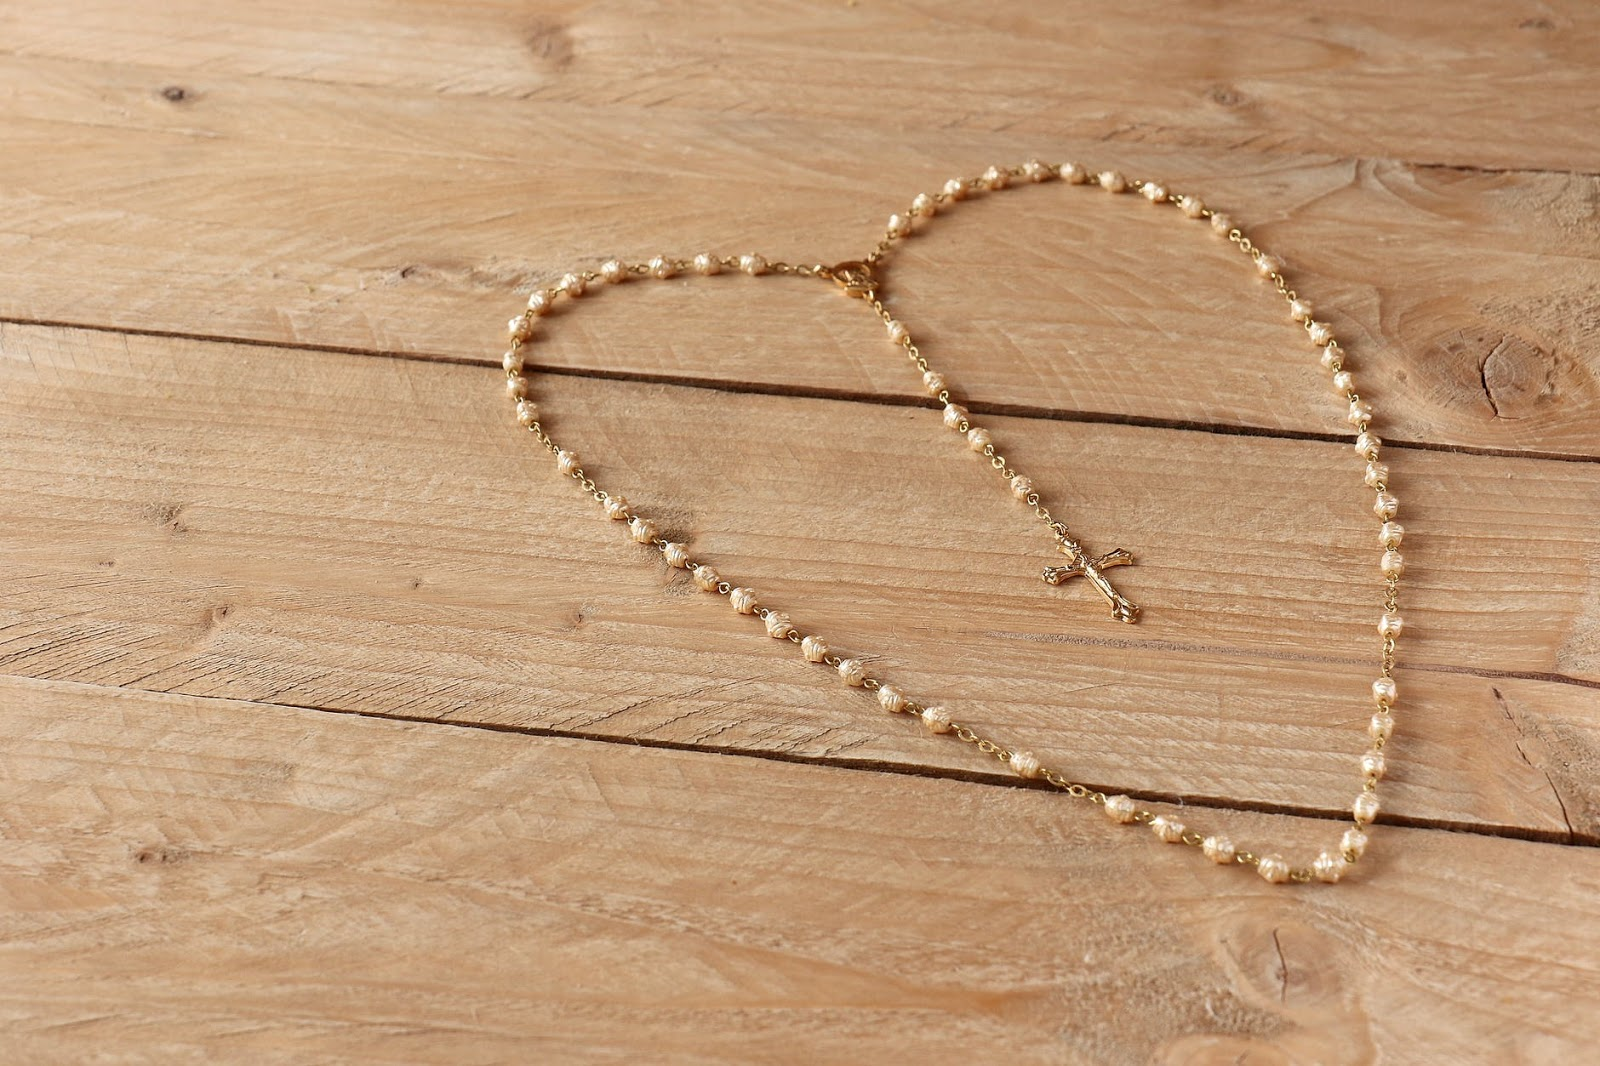 Cross necklace laid in the shape of a heart